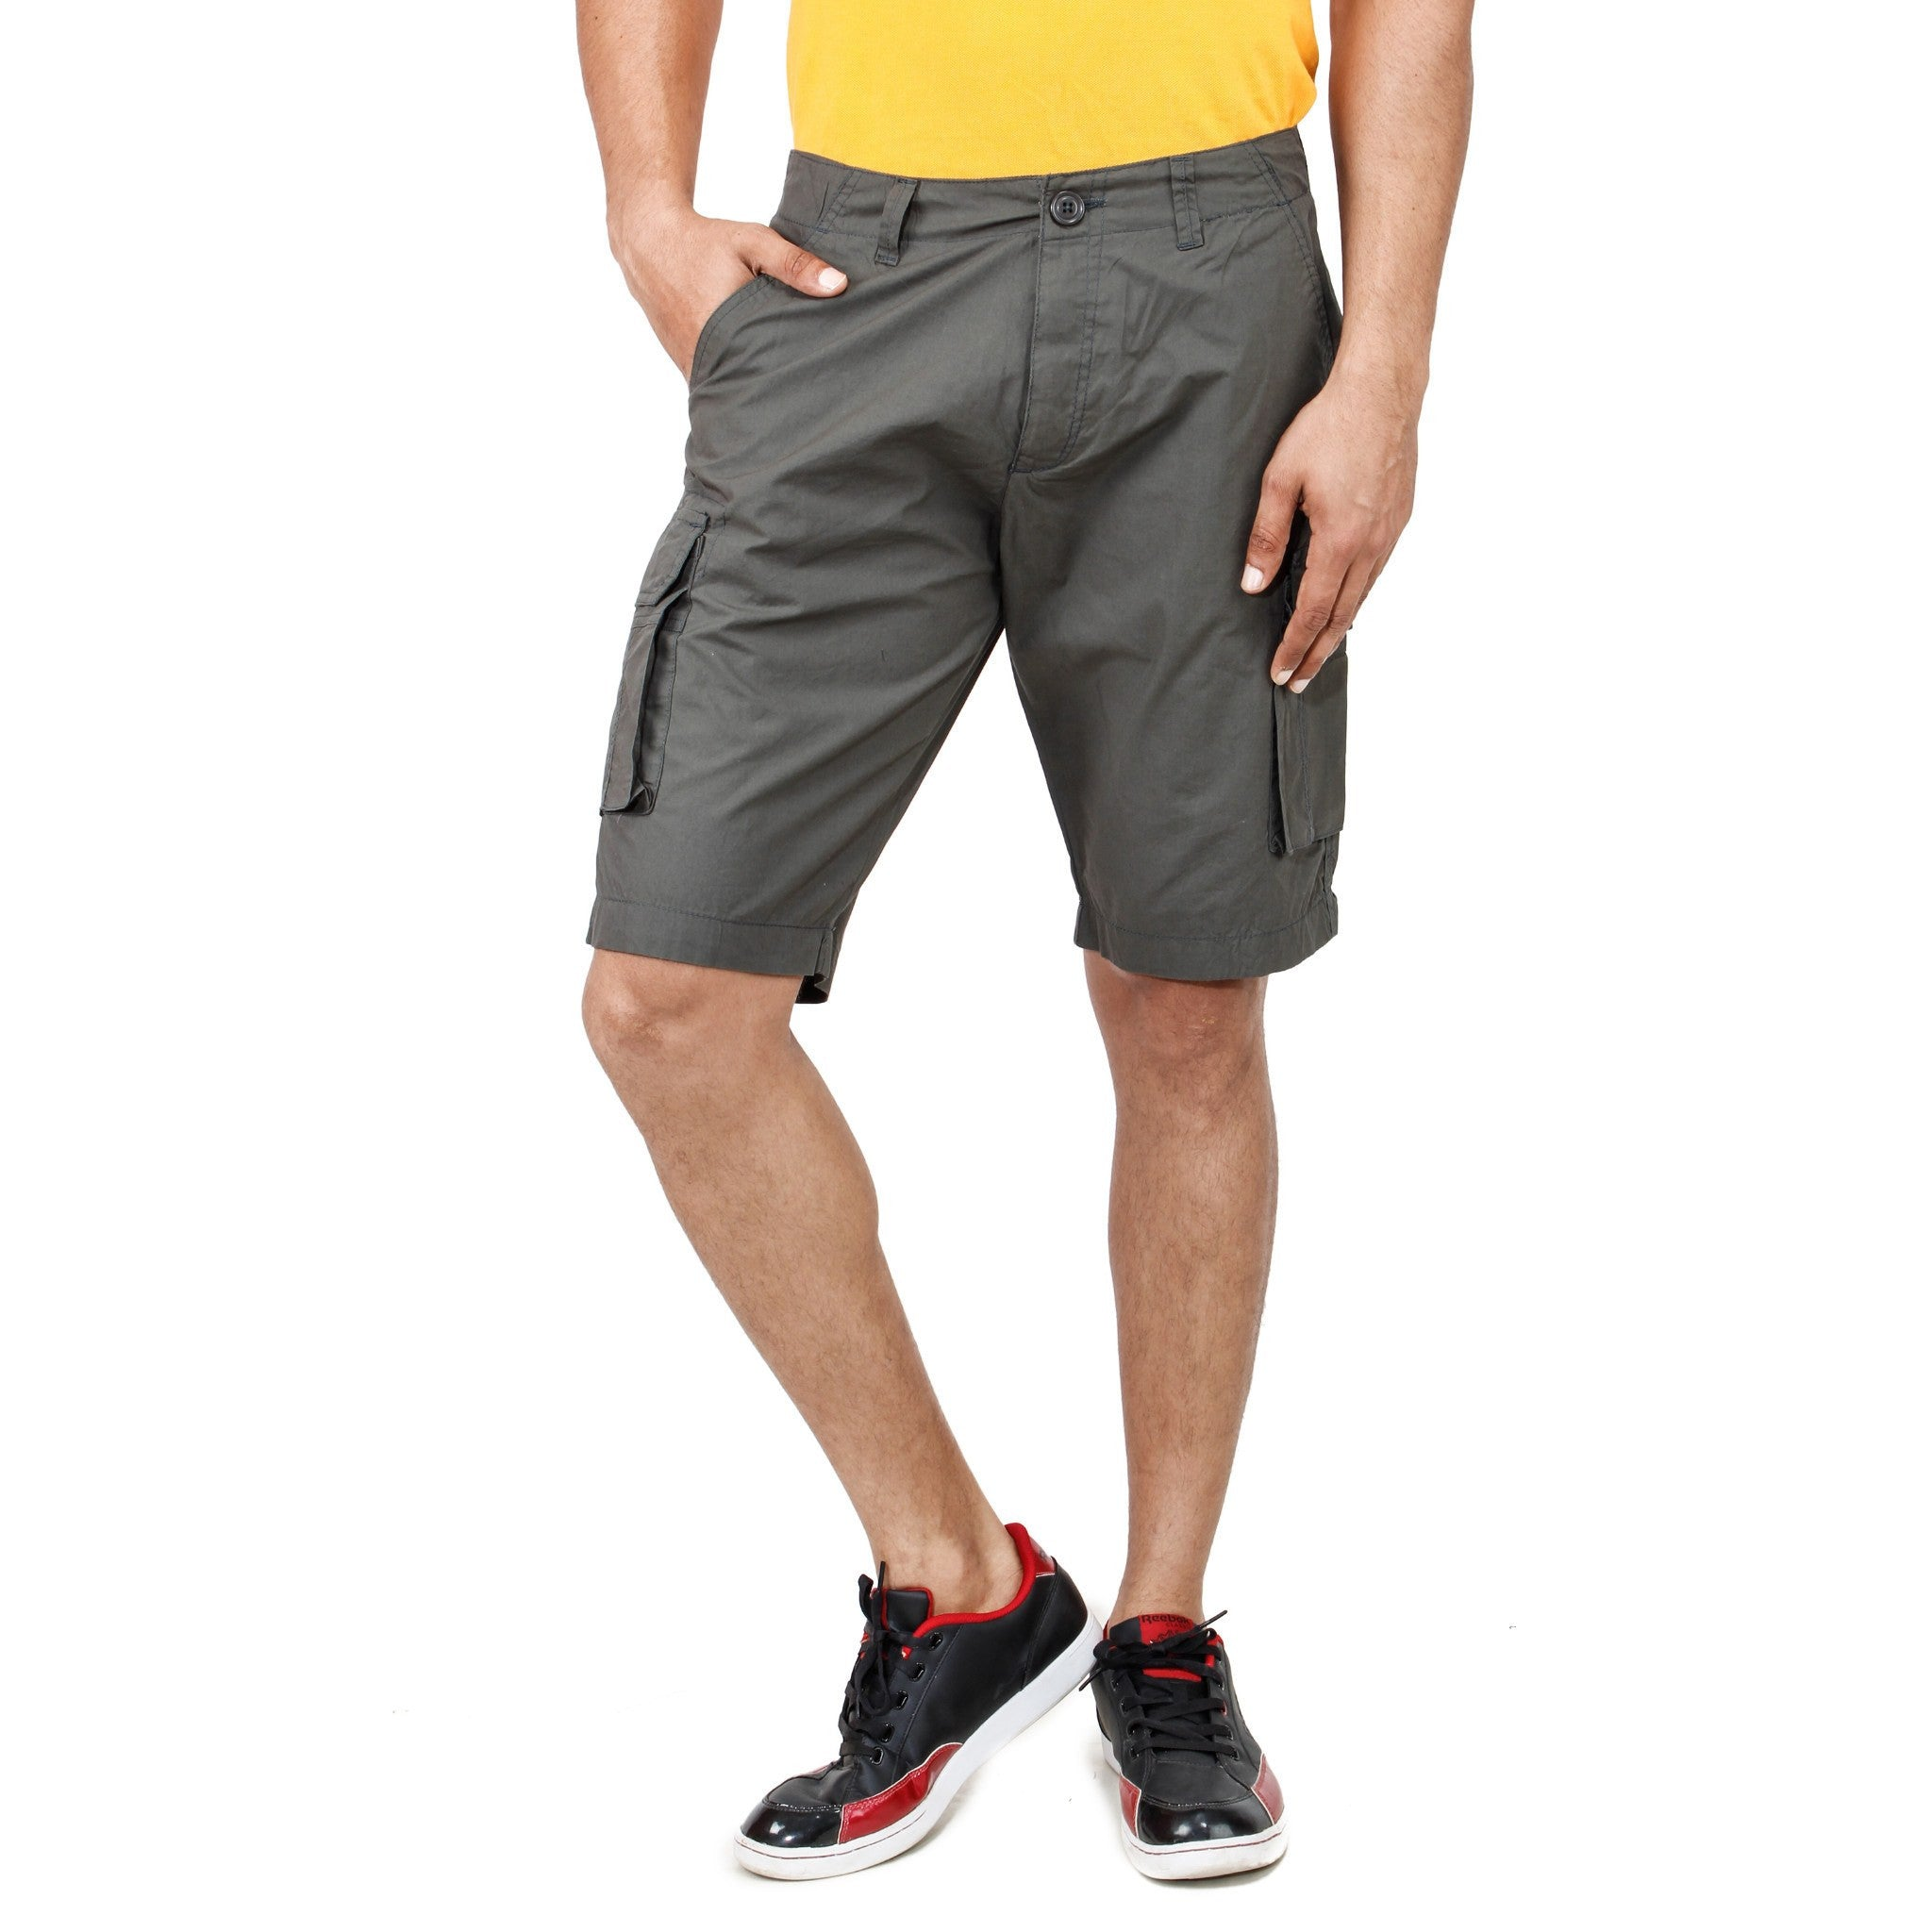 Uber Dimgray Pop Shorts front view